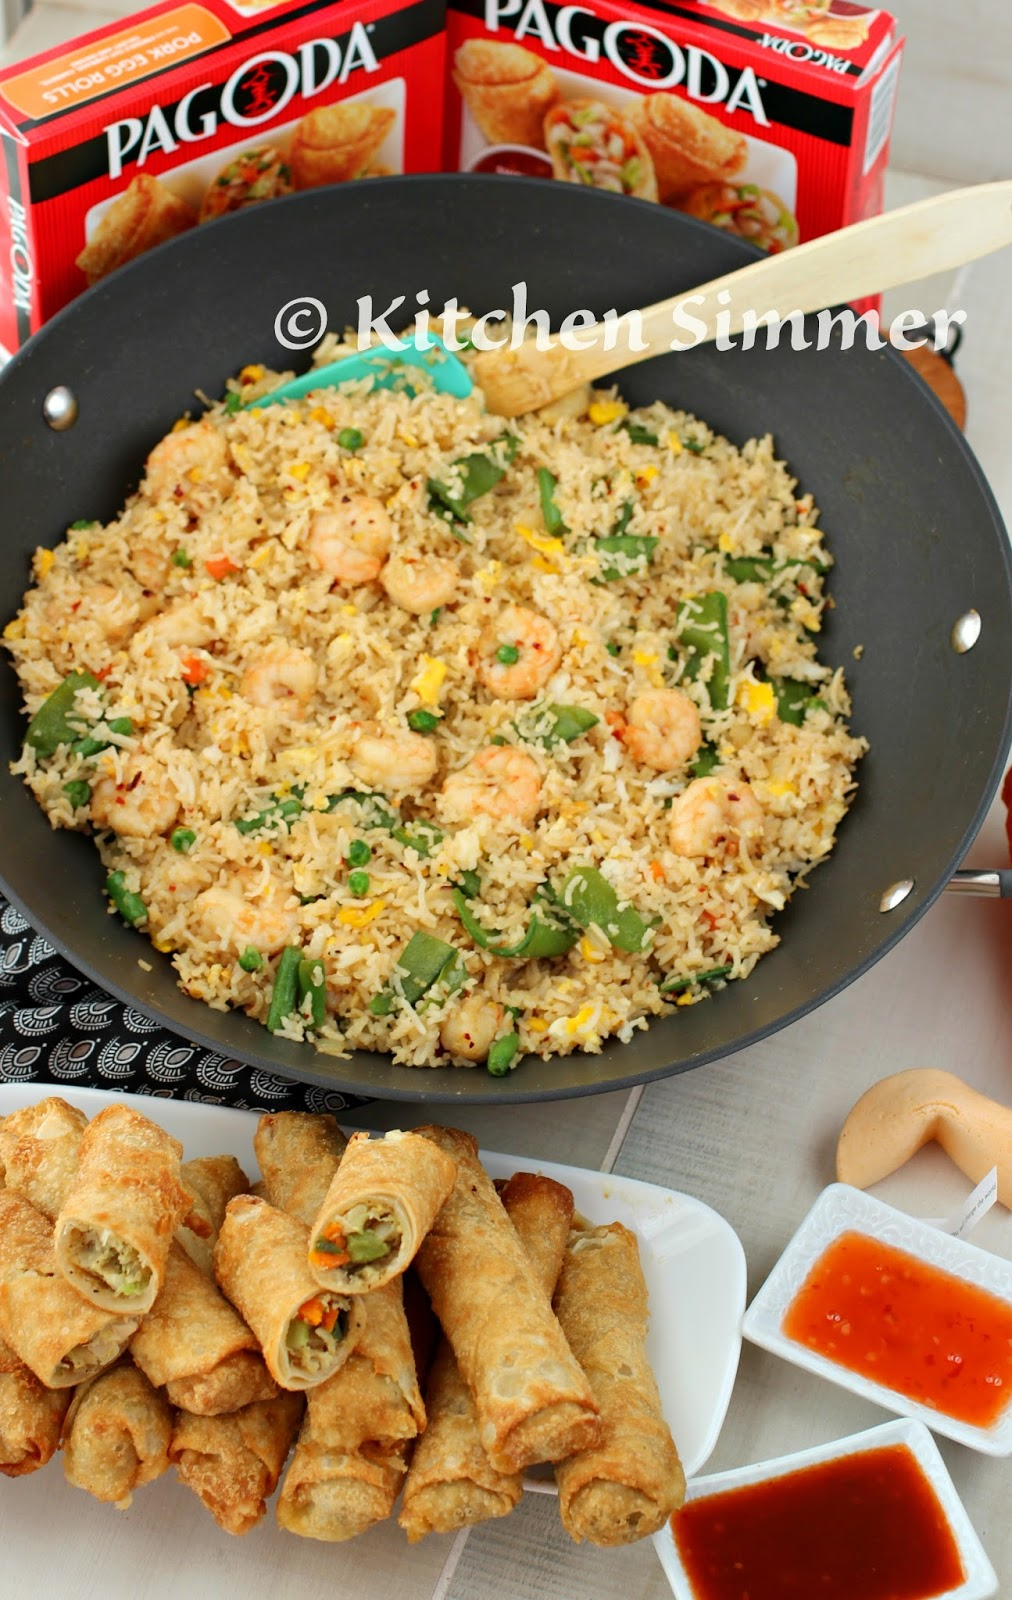 Kitchen simmer easy shrimp fried rice with pagoda egg rolls 4 5 cups cooked and cooled white rice 3 eggs salt and black pepper 2 tbs butter or margarine 2 tbs light oil canola ccuart Choice Image